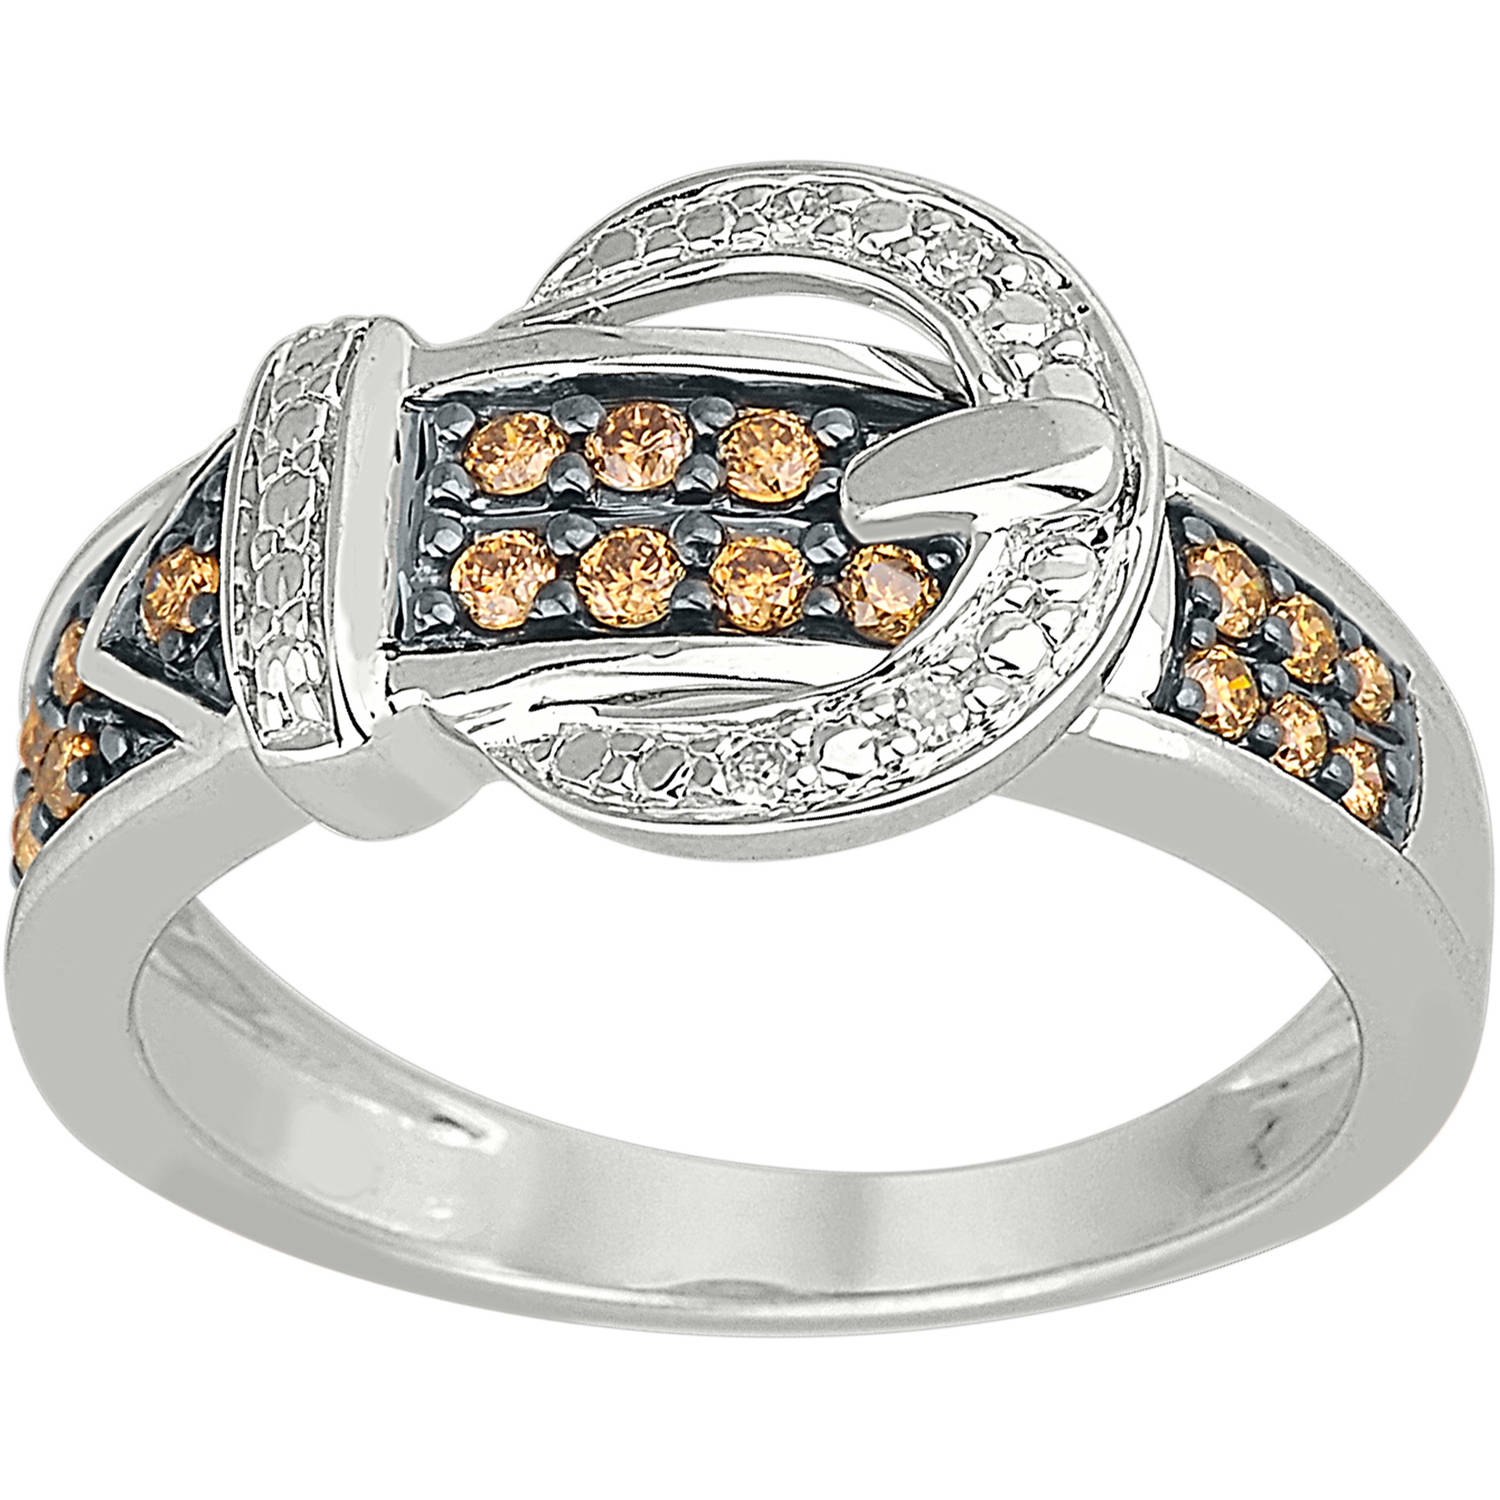 1/4 Carat T.W. Champagne and White Diamond 10kt White Gold Buckle Ring